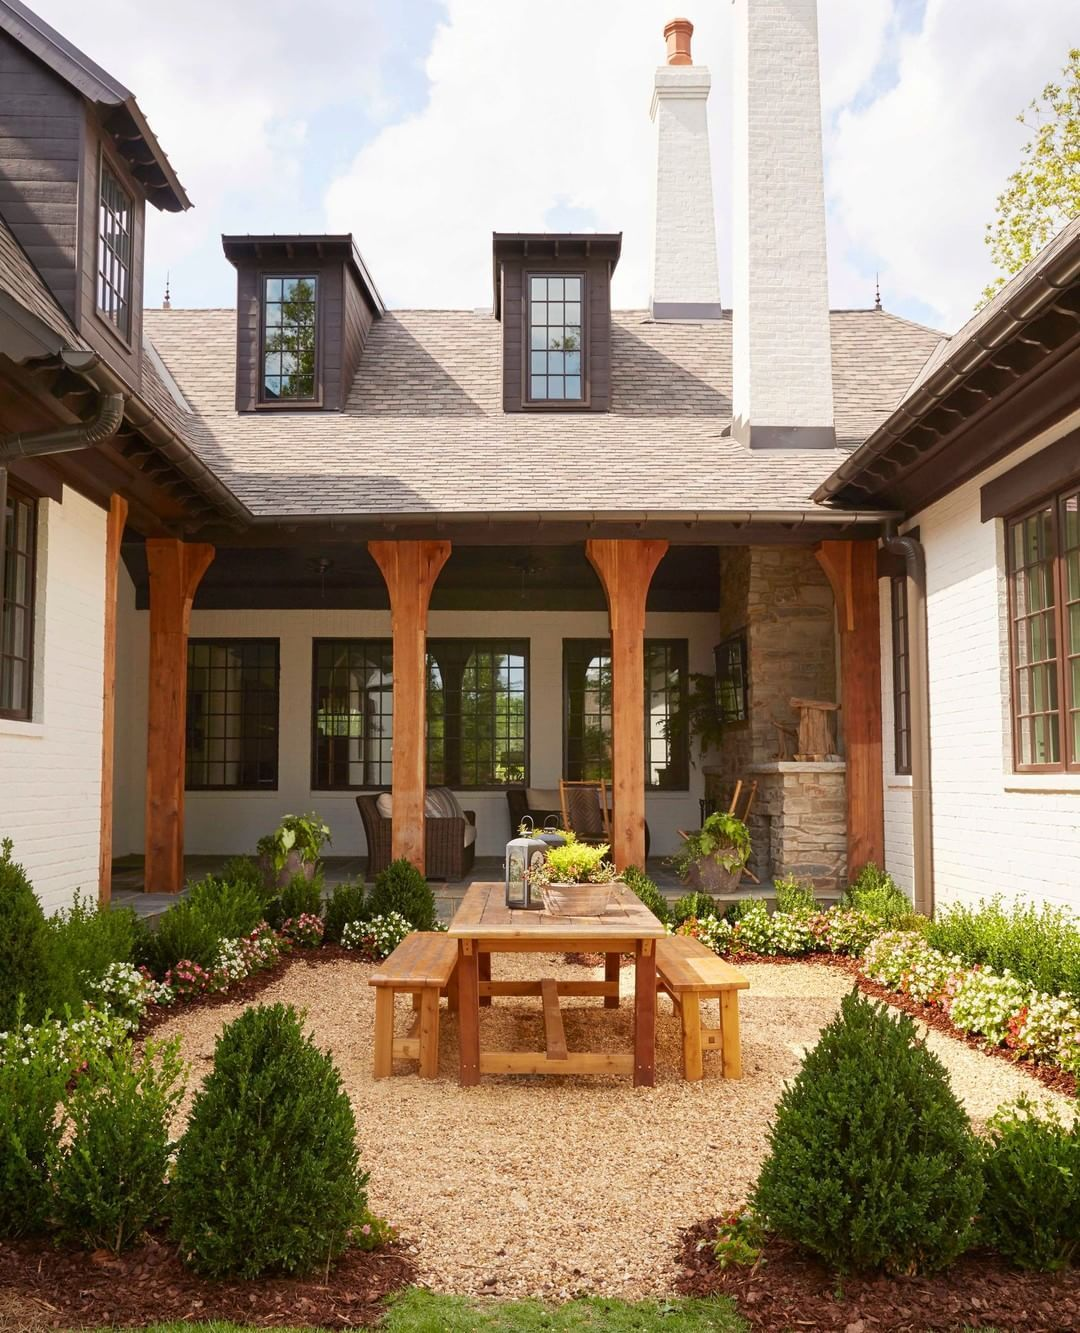 This french country cottage was designed in a u shape to create a private courtyard escape in the middle of the home we are ready to